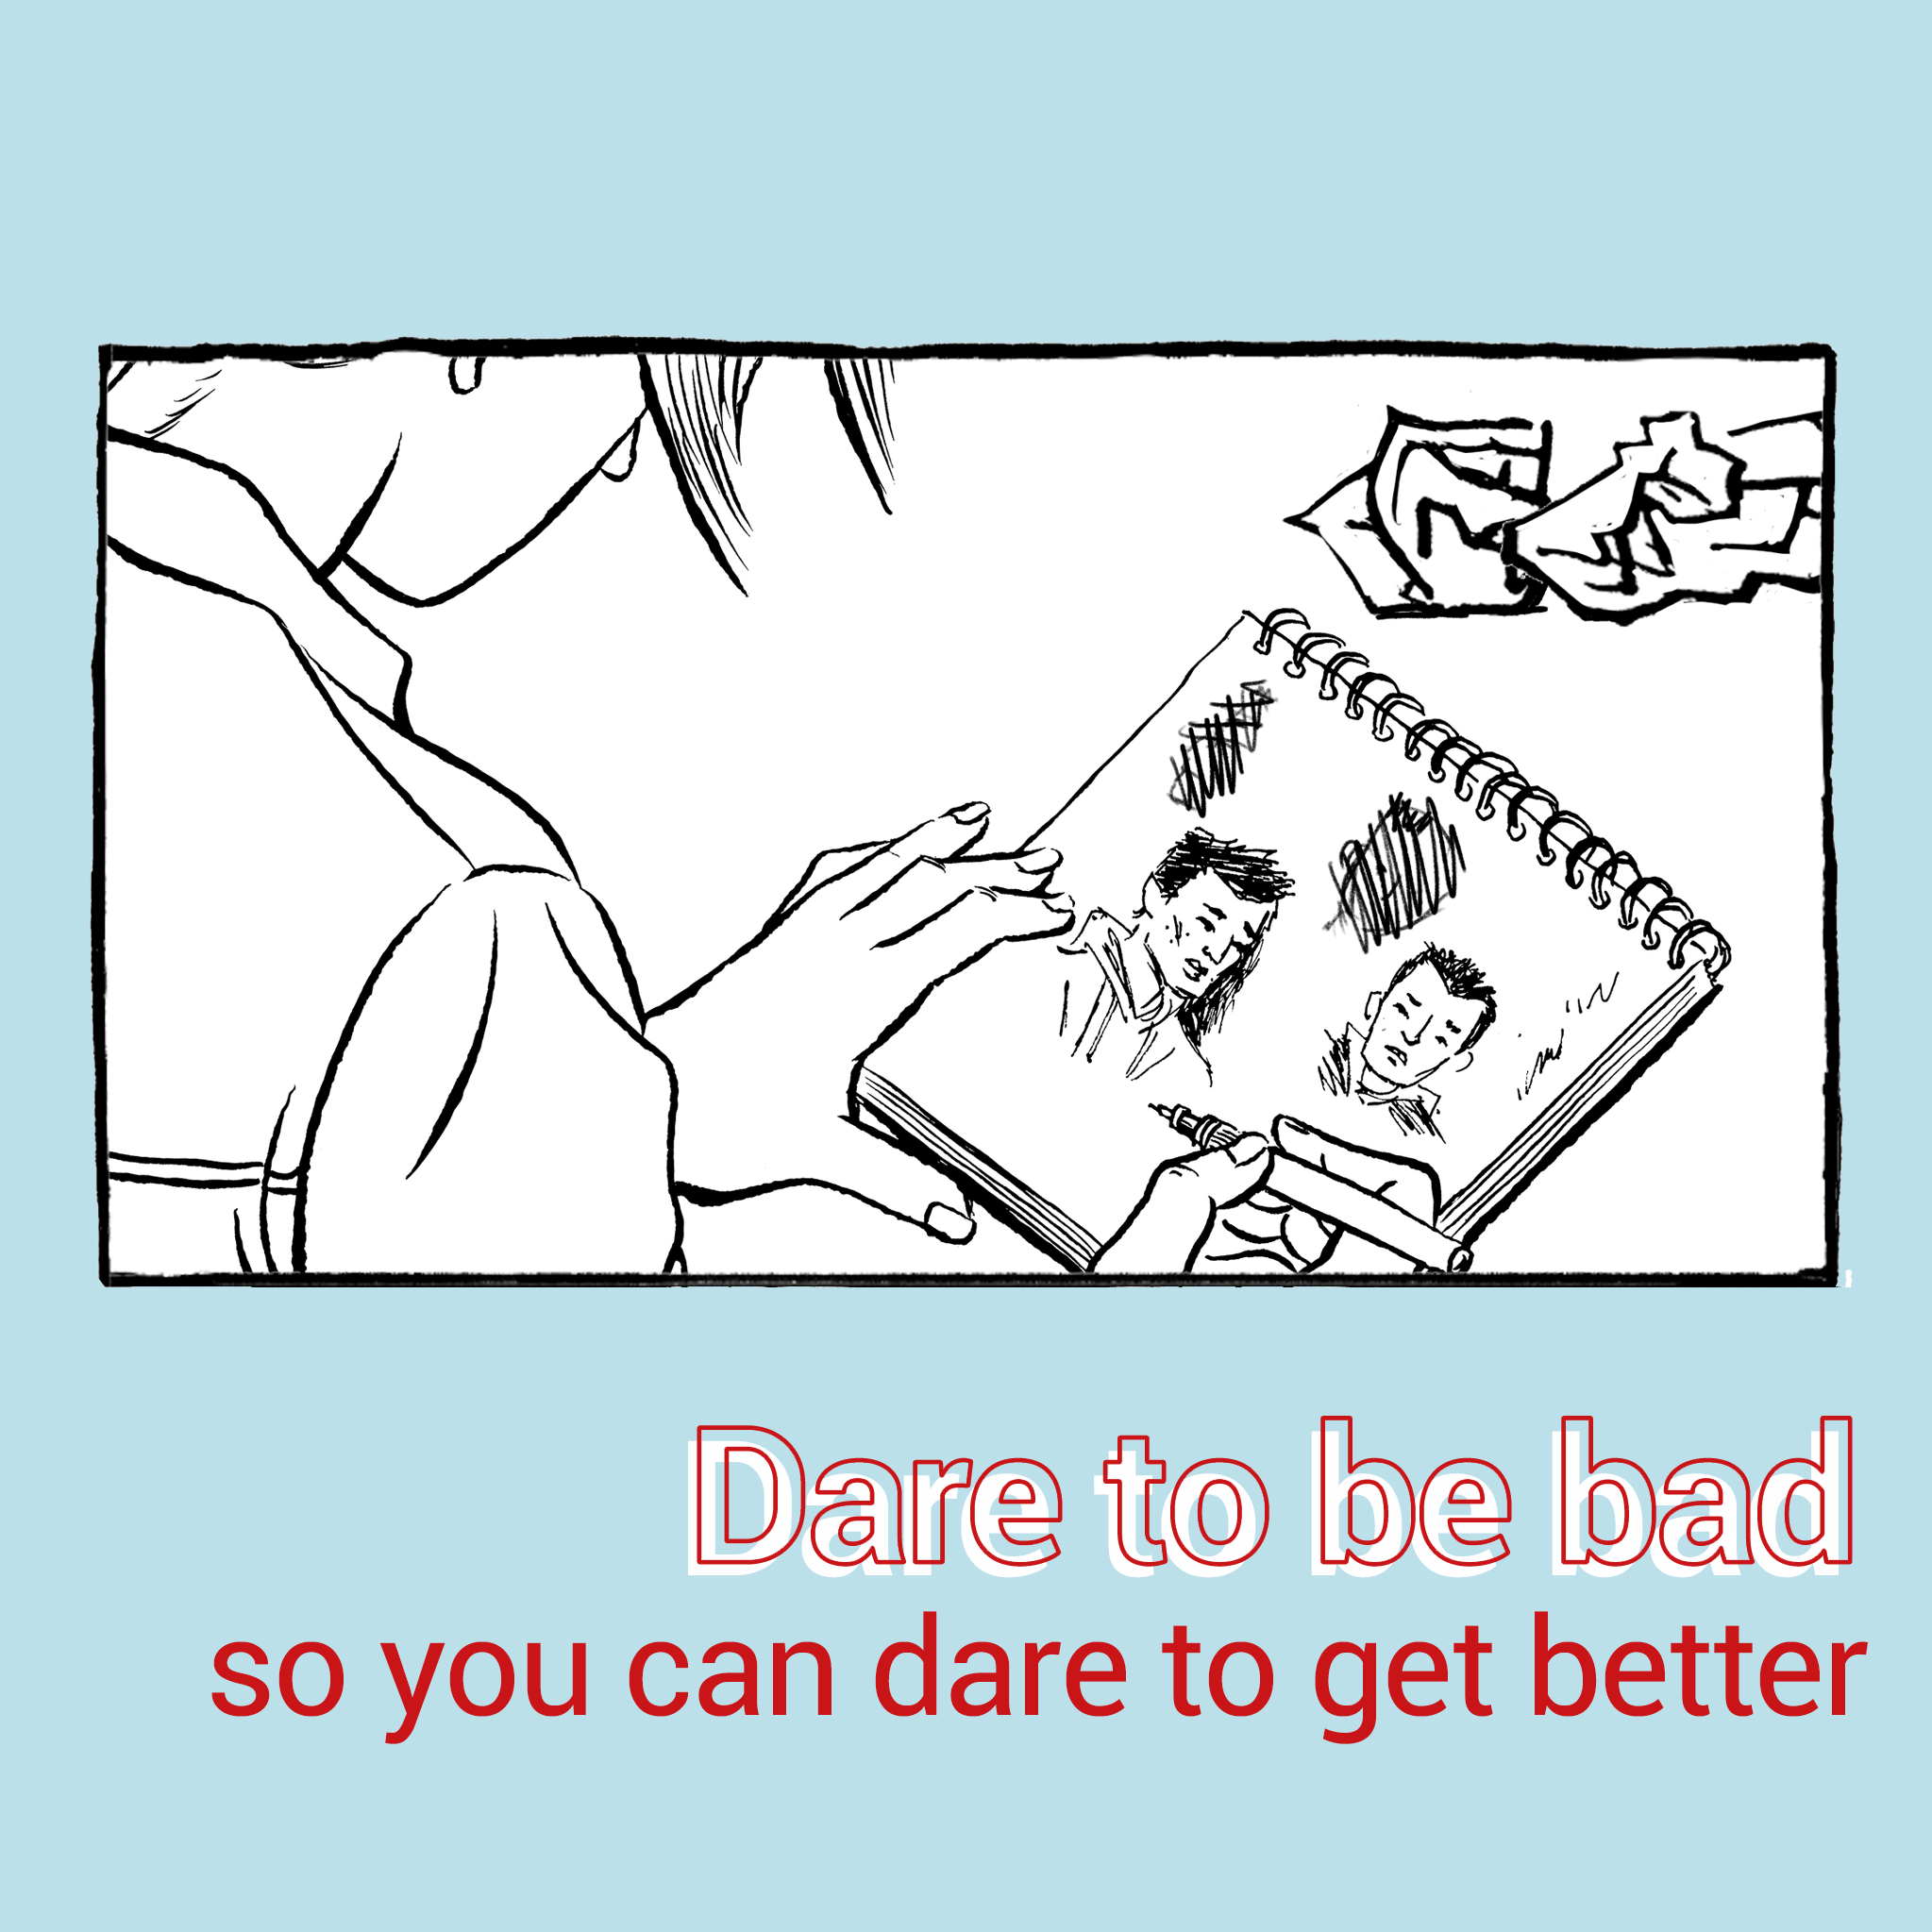 dare to be bad